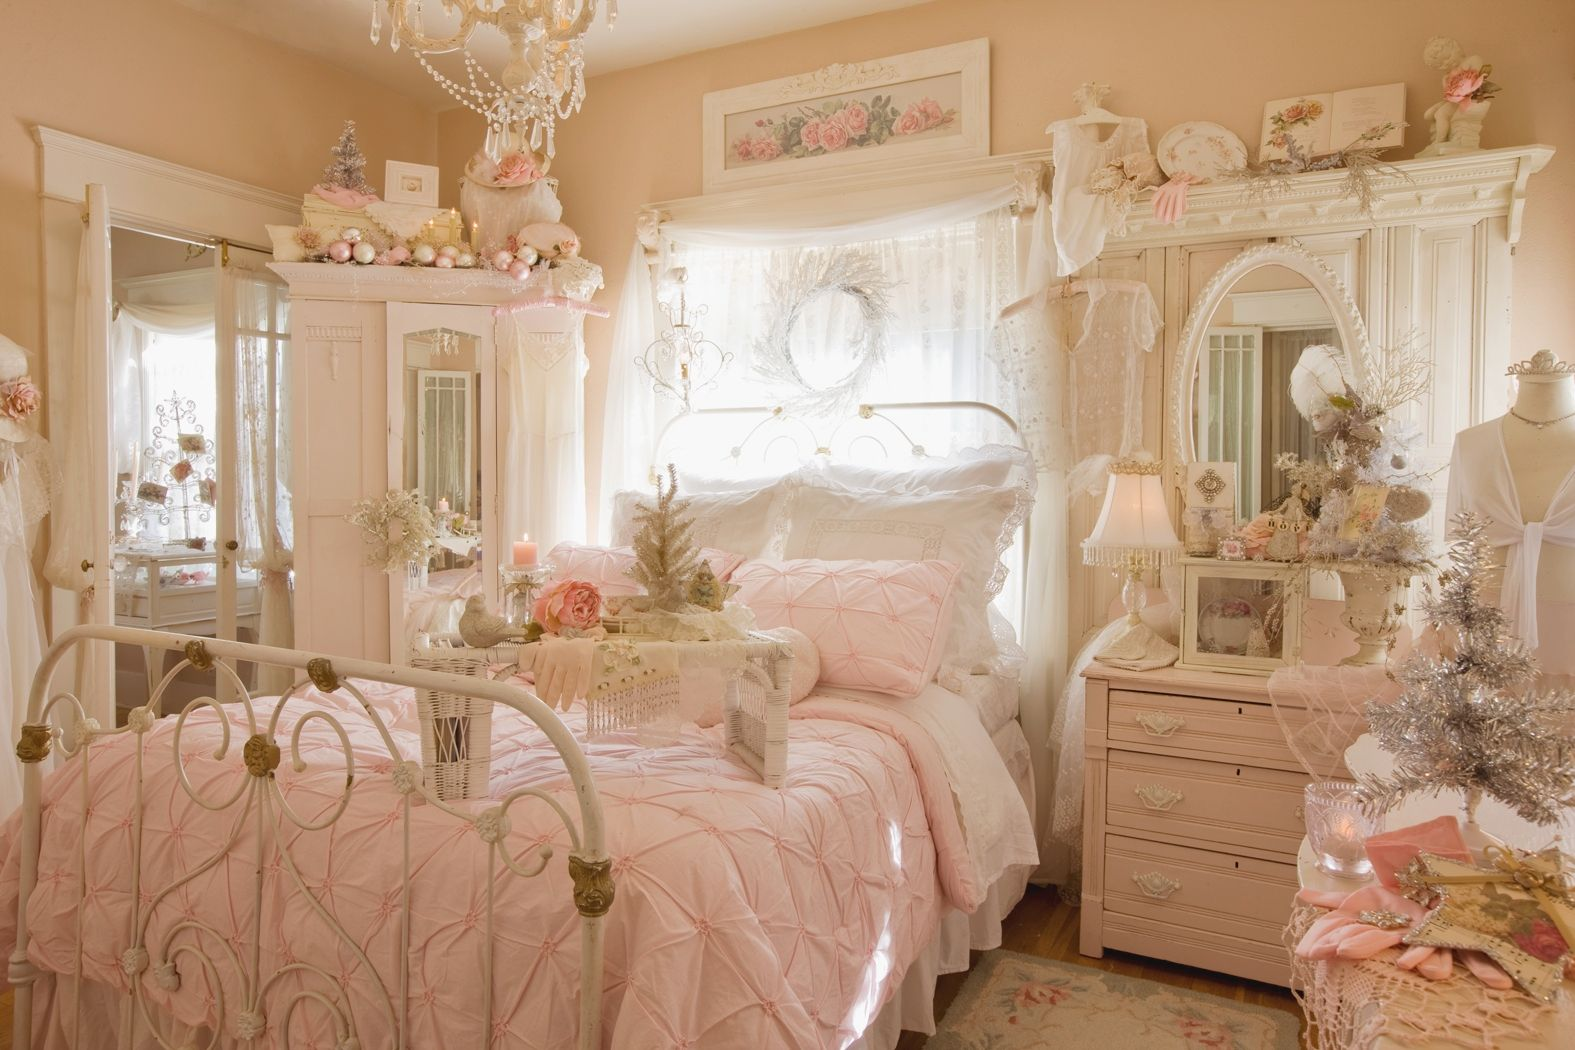 Cindy S Home Romantic Country Magazine Shabby Chic Decor Bedroom